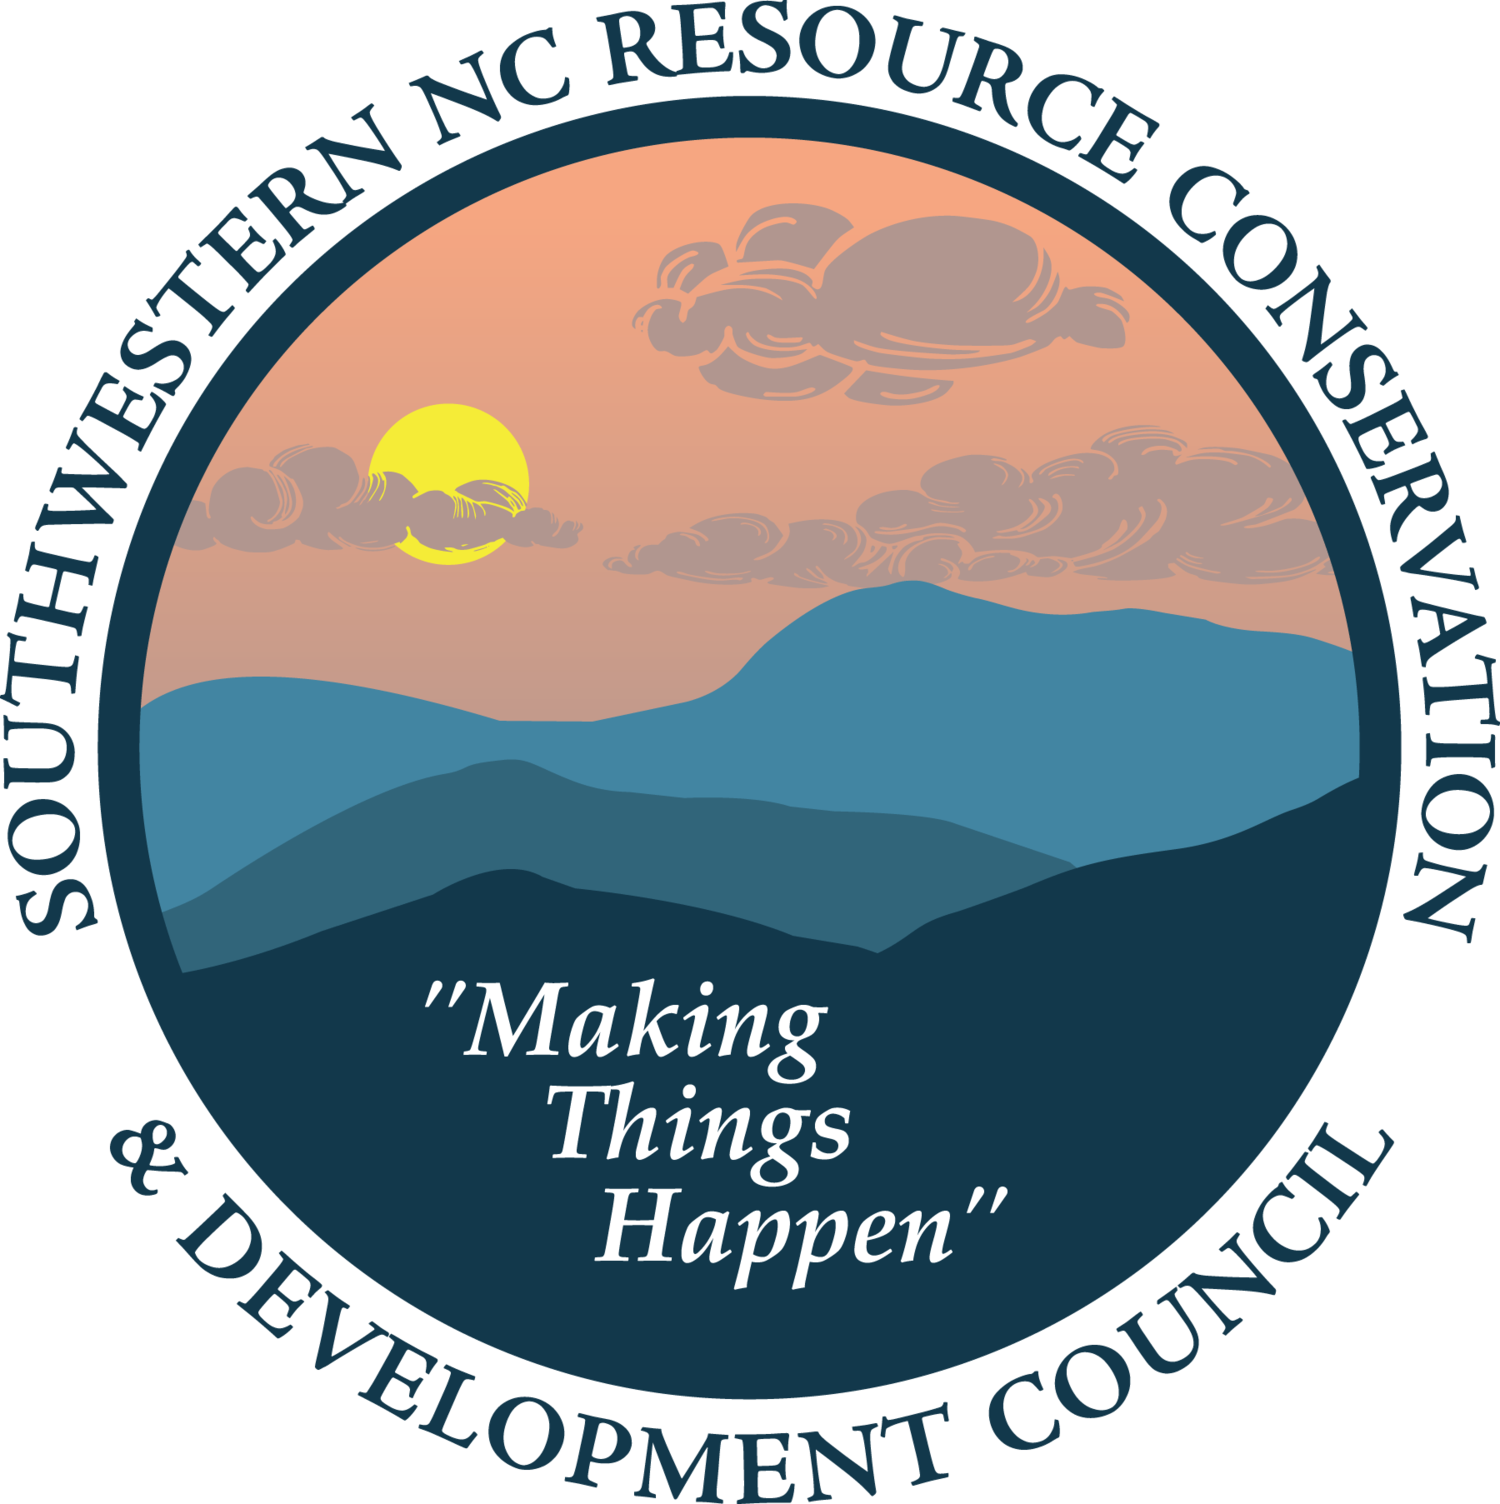 Southwestern NC Resource Conservation & Development Council